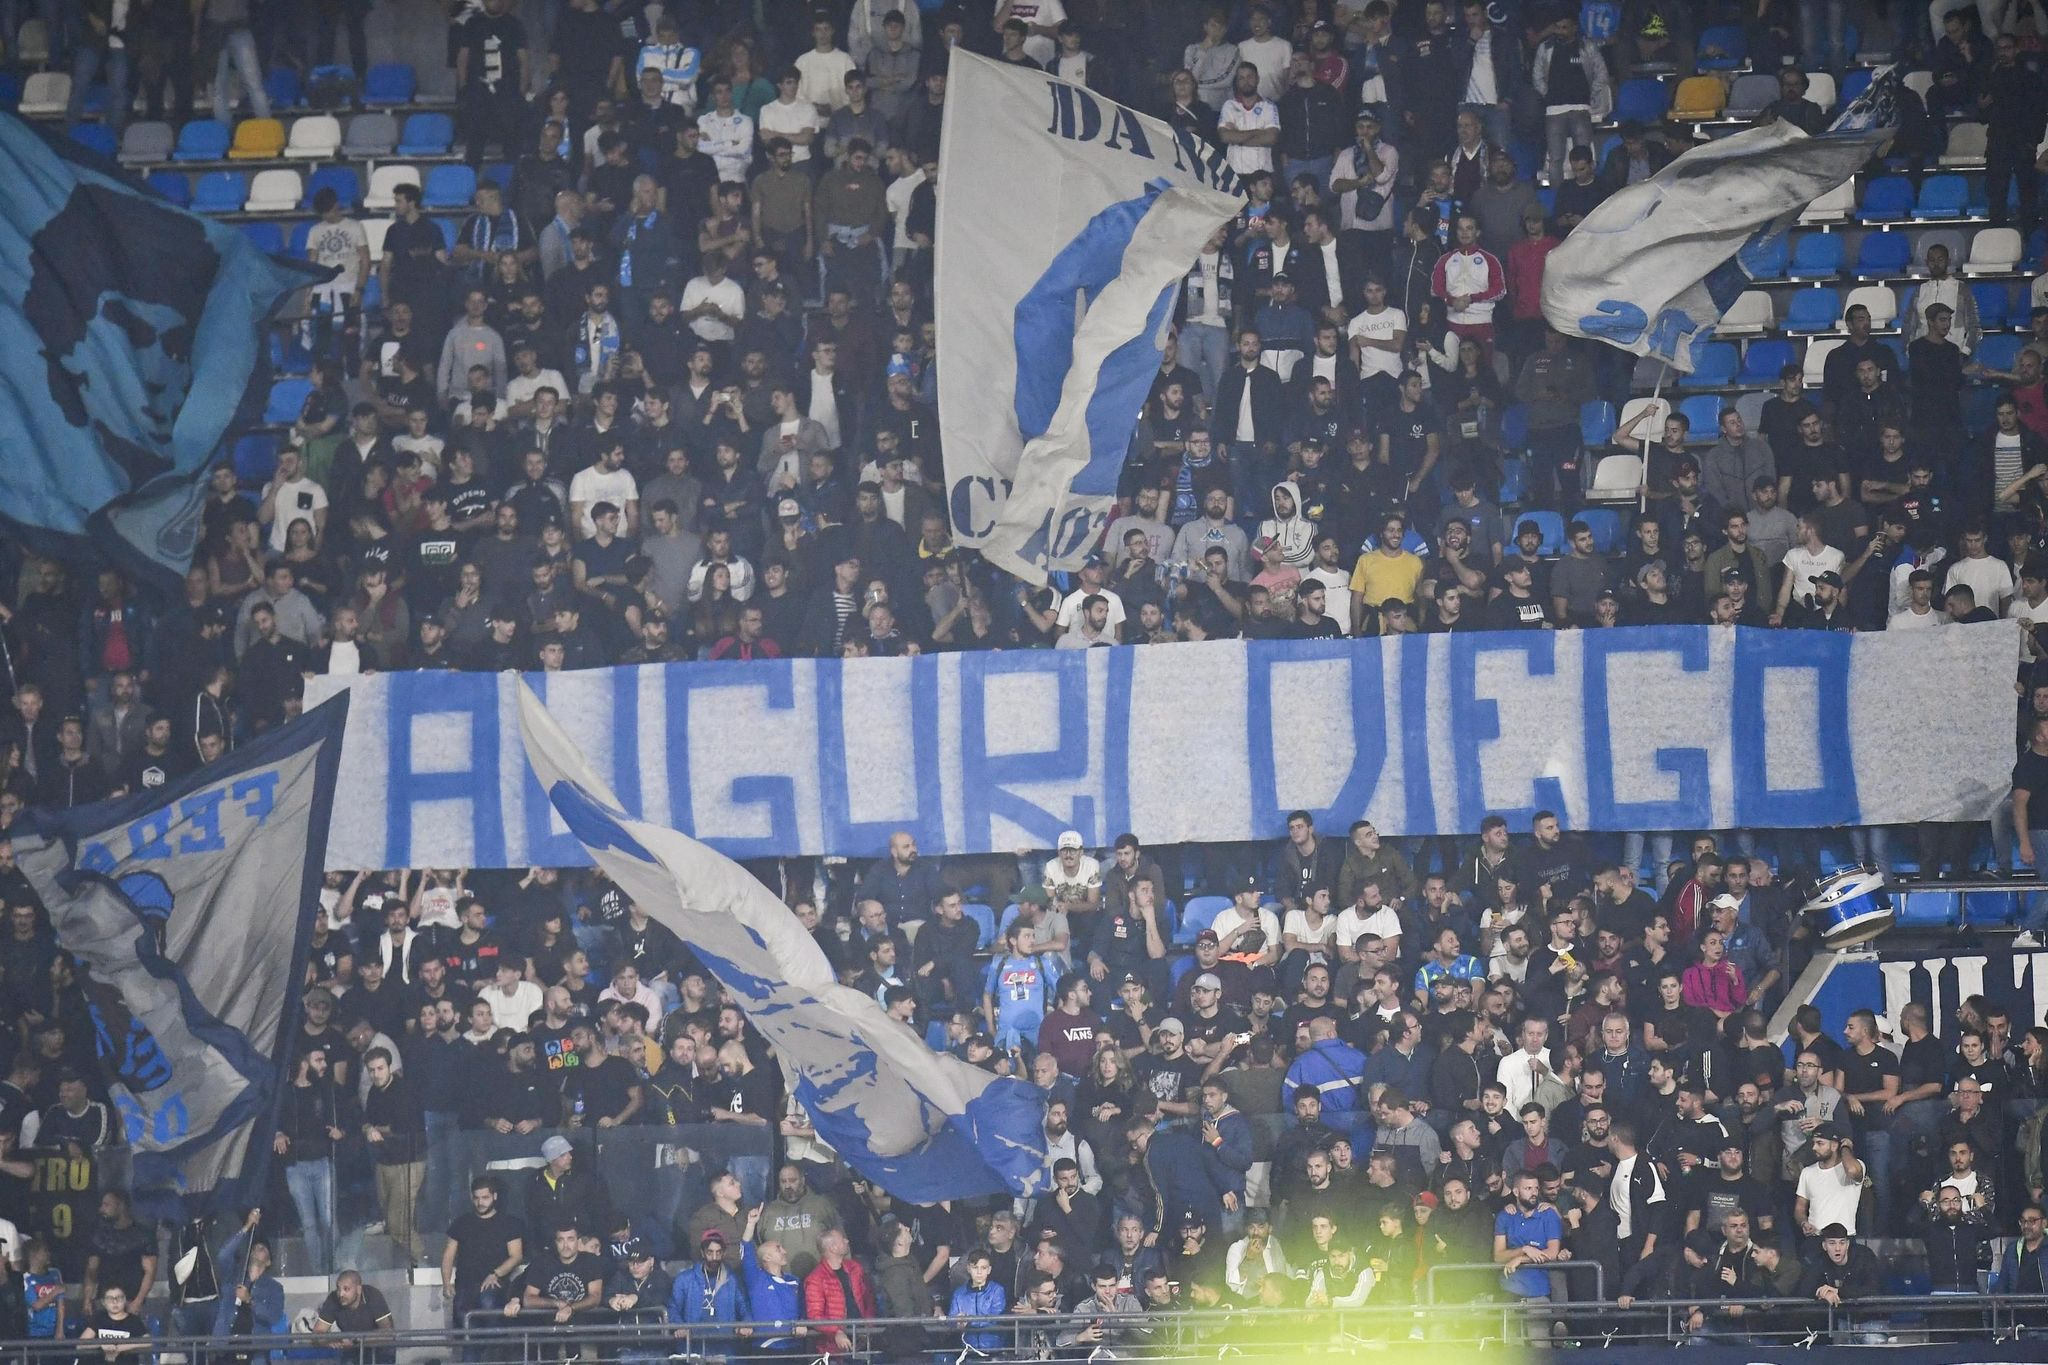 Naples (Italy), 30/10/2019.- A banner exposed in the stadium for <HIT>Napoli</HIT>s former player Diego Armando Maradona during the Italian Serie A soccer match between SSC <HIT>Napoli</HIT> and Atalanta BC at the San Paolo stadium in Naples, Italy, 30 October 2019. (Italia, Nápoles) EFE/EPA/CIRO FUSCO